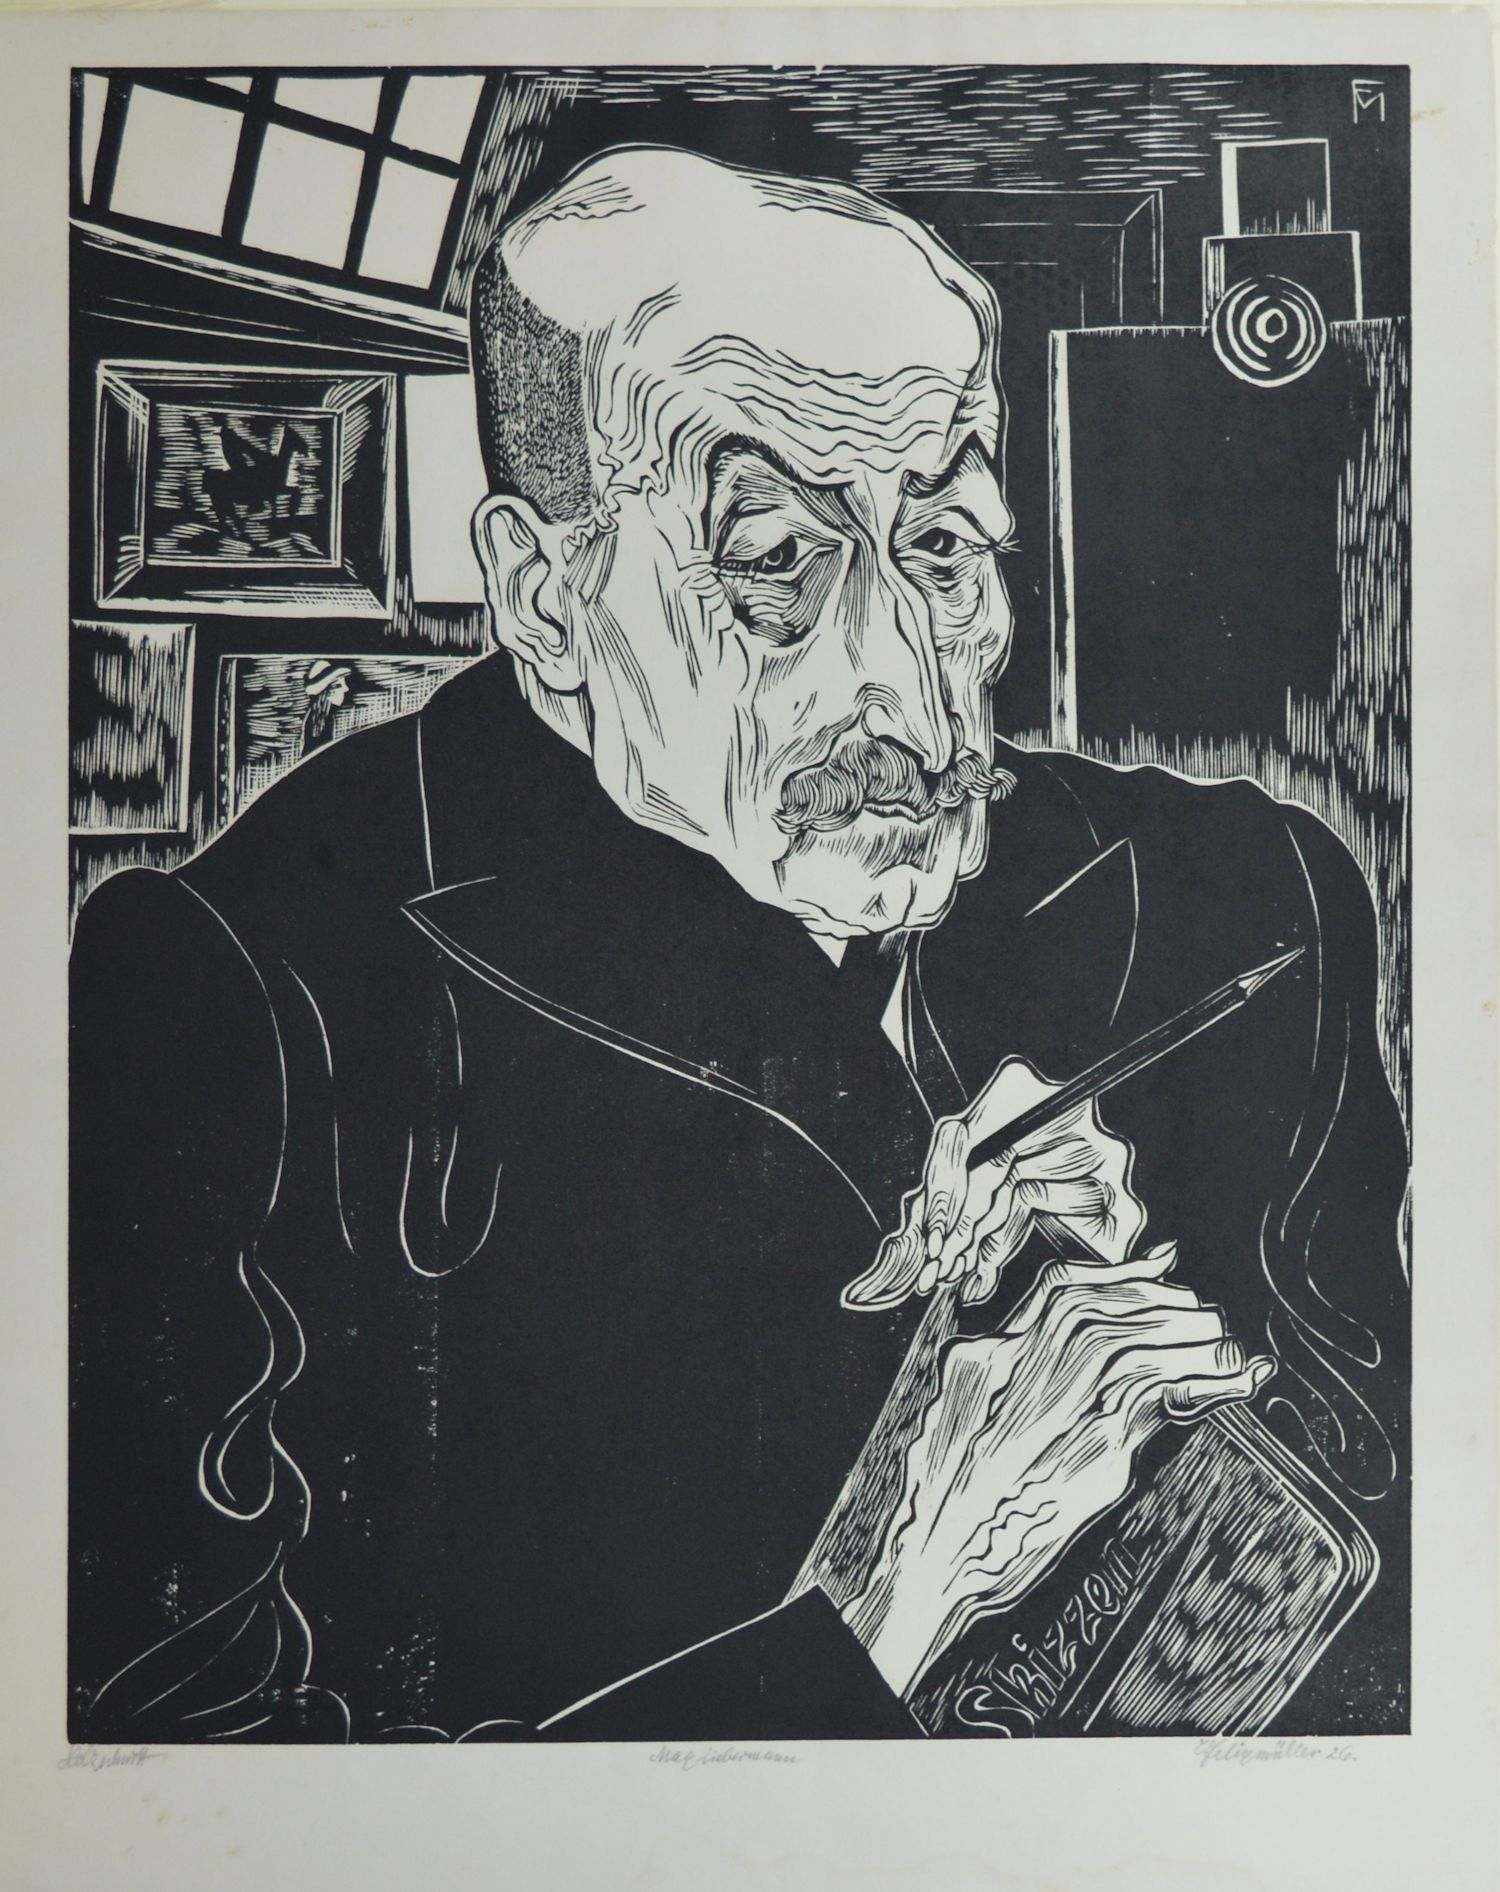 """Conrad Felixmuller (1897 - 1977)  Bildnis Max Liebermann , 1926. Woodcut, edition of 70. Image size 15-3/4"""" x 19-5/8"""". Very fine, dark impression; minor spots & damp stain well outside of image area. An iconic Expressionist work.   $2,600"""